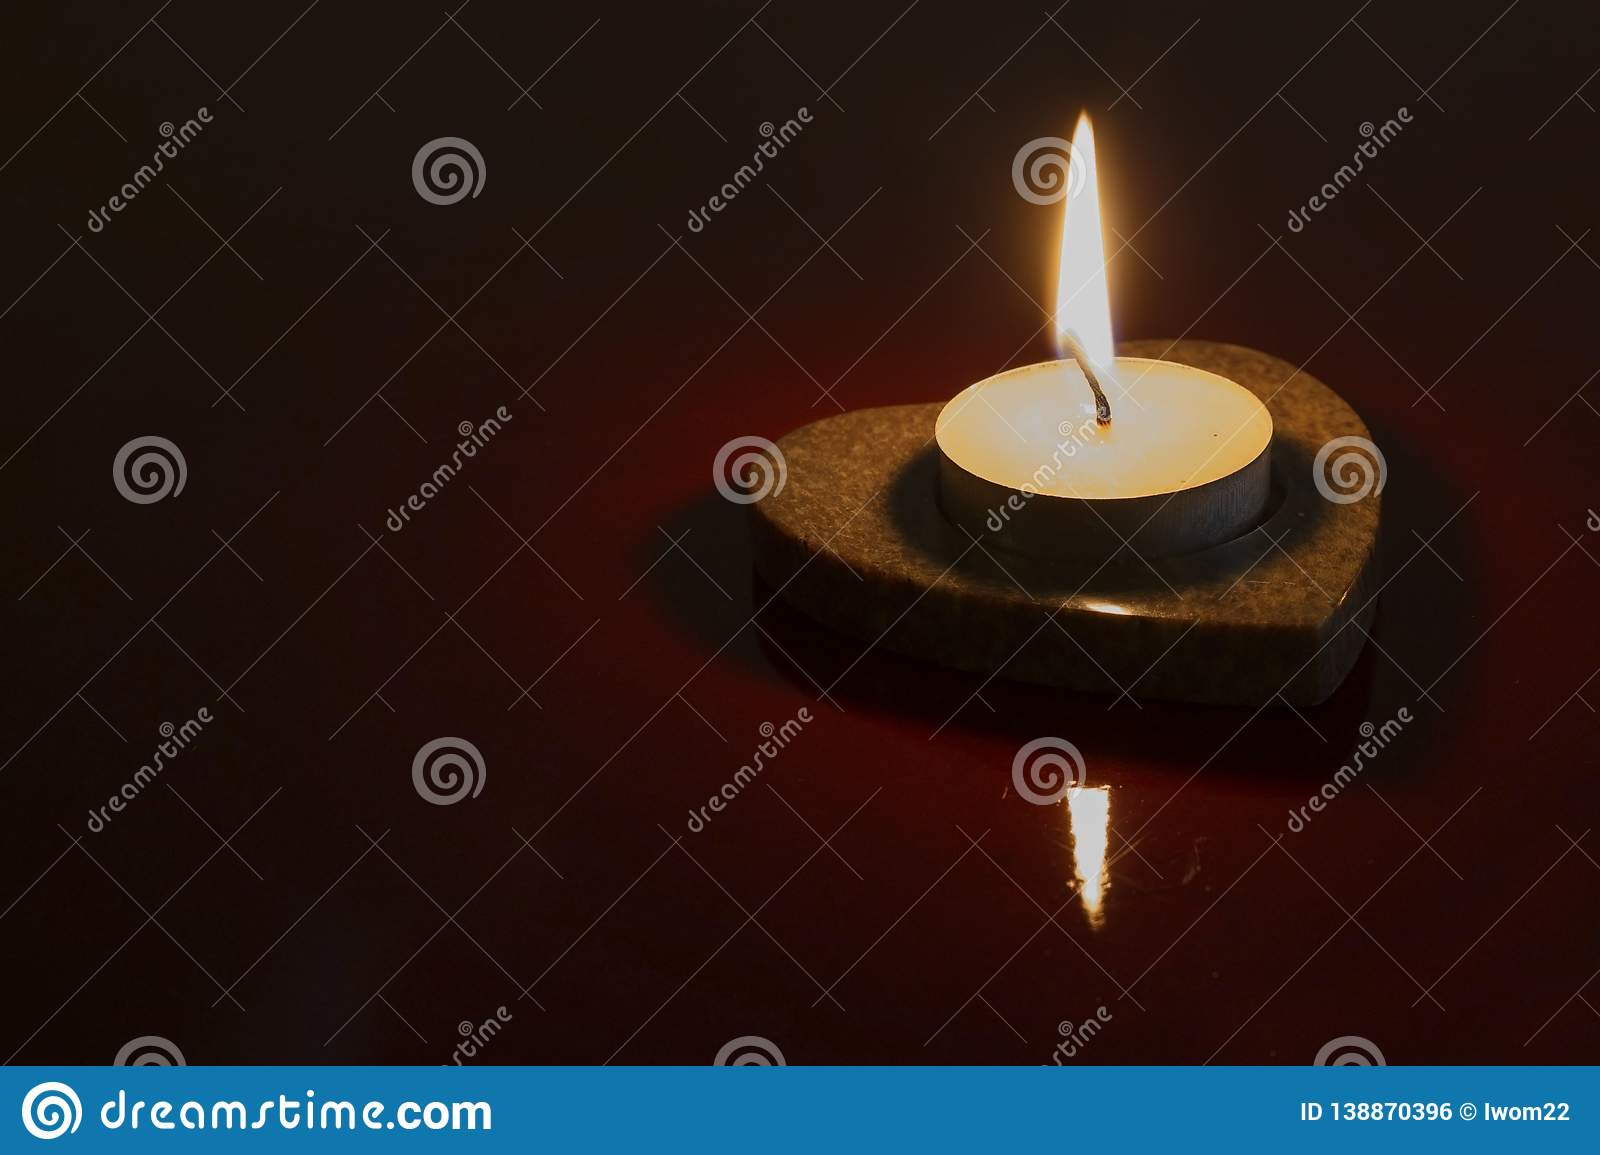 Burning candle in a dark